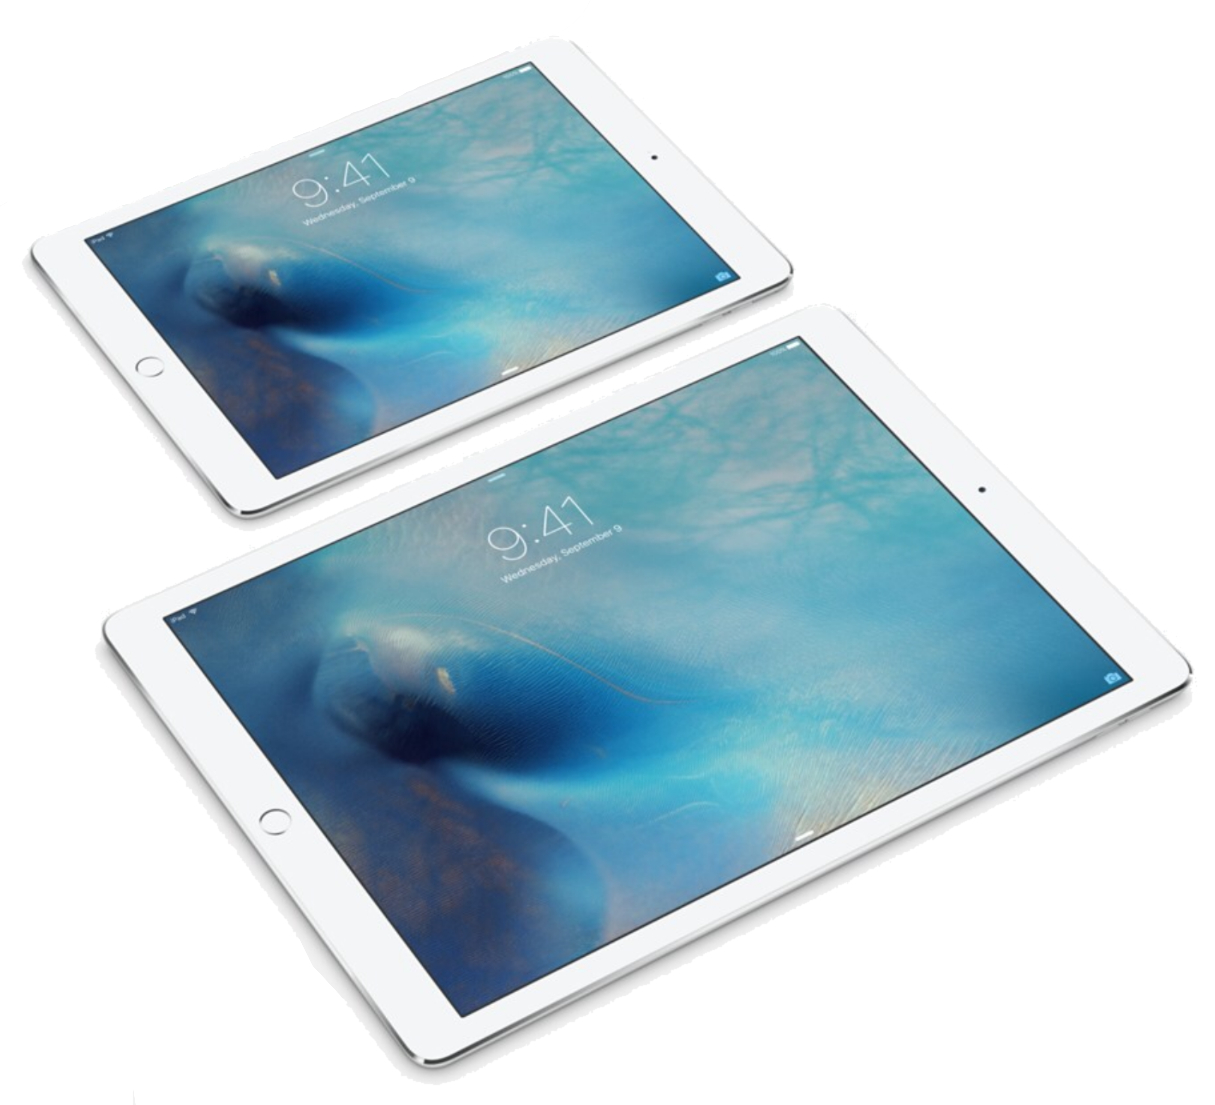 Ipad Air 2 Apple Ipad Pro Vs Ipad Air 2 Which Is Right For You